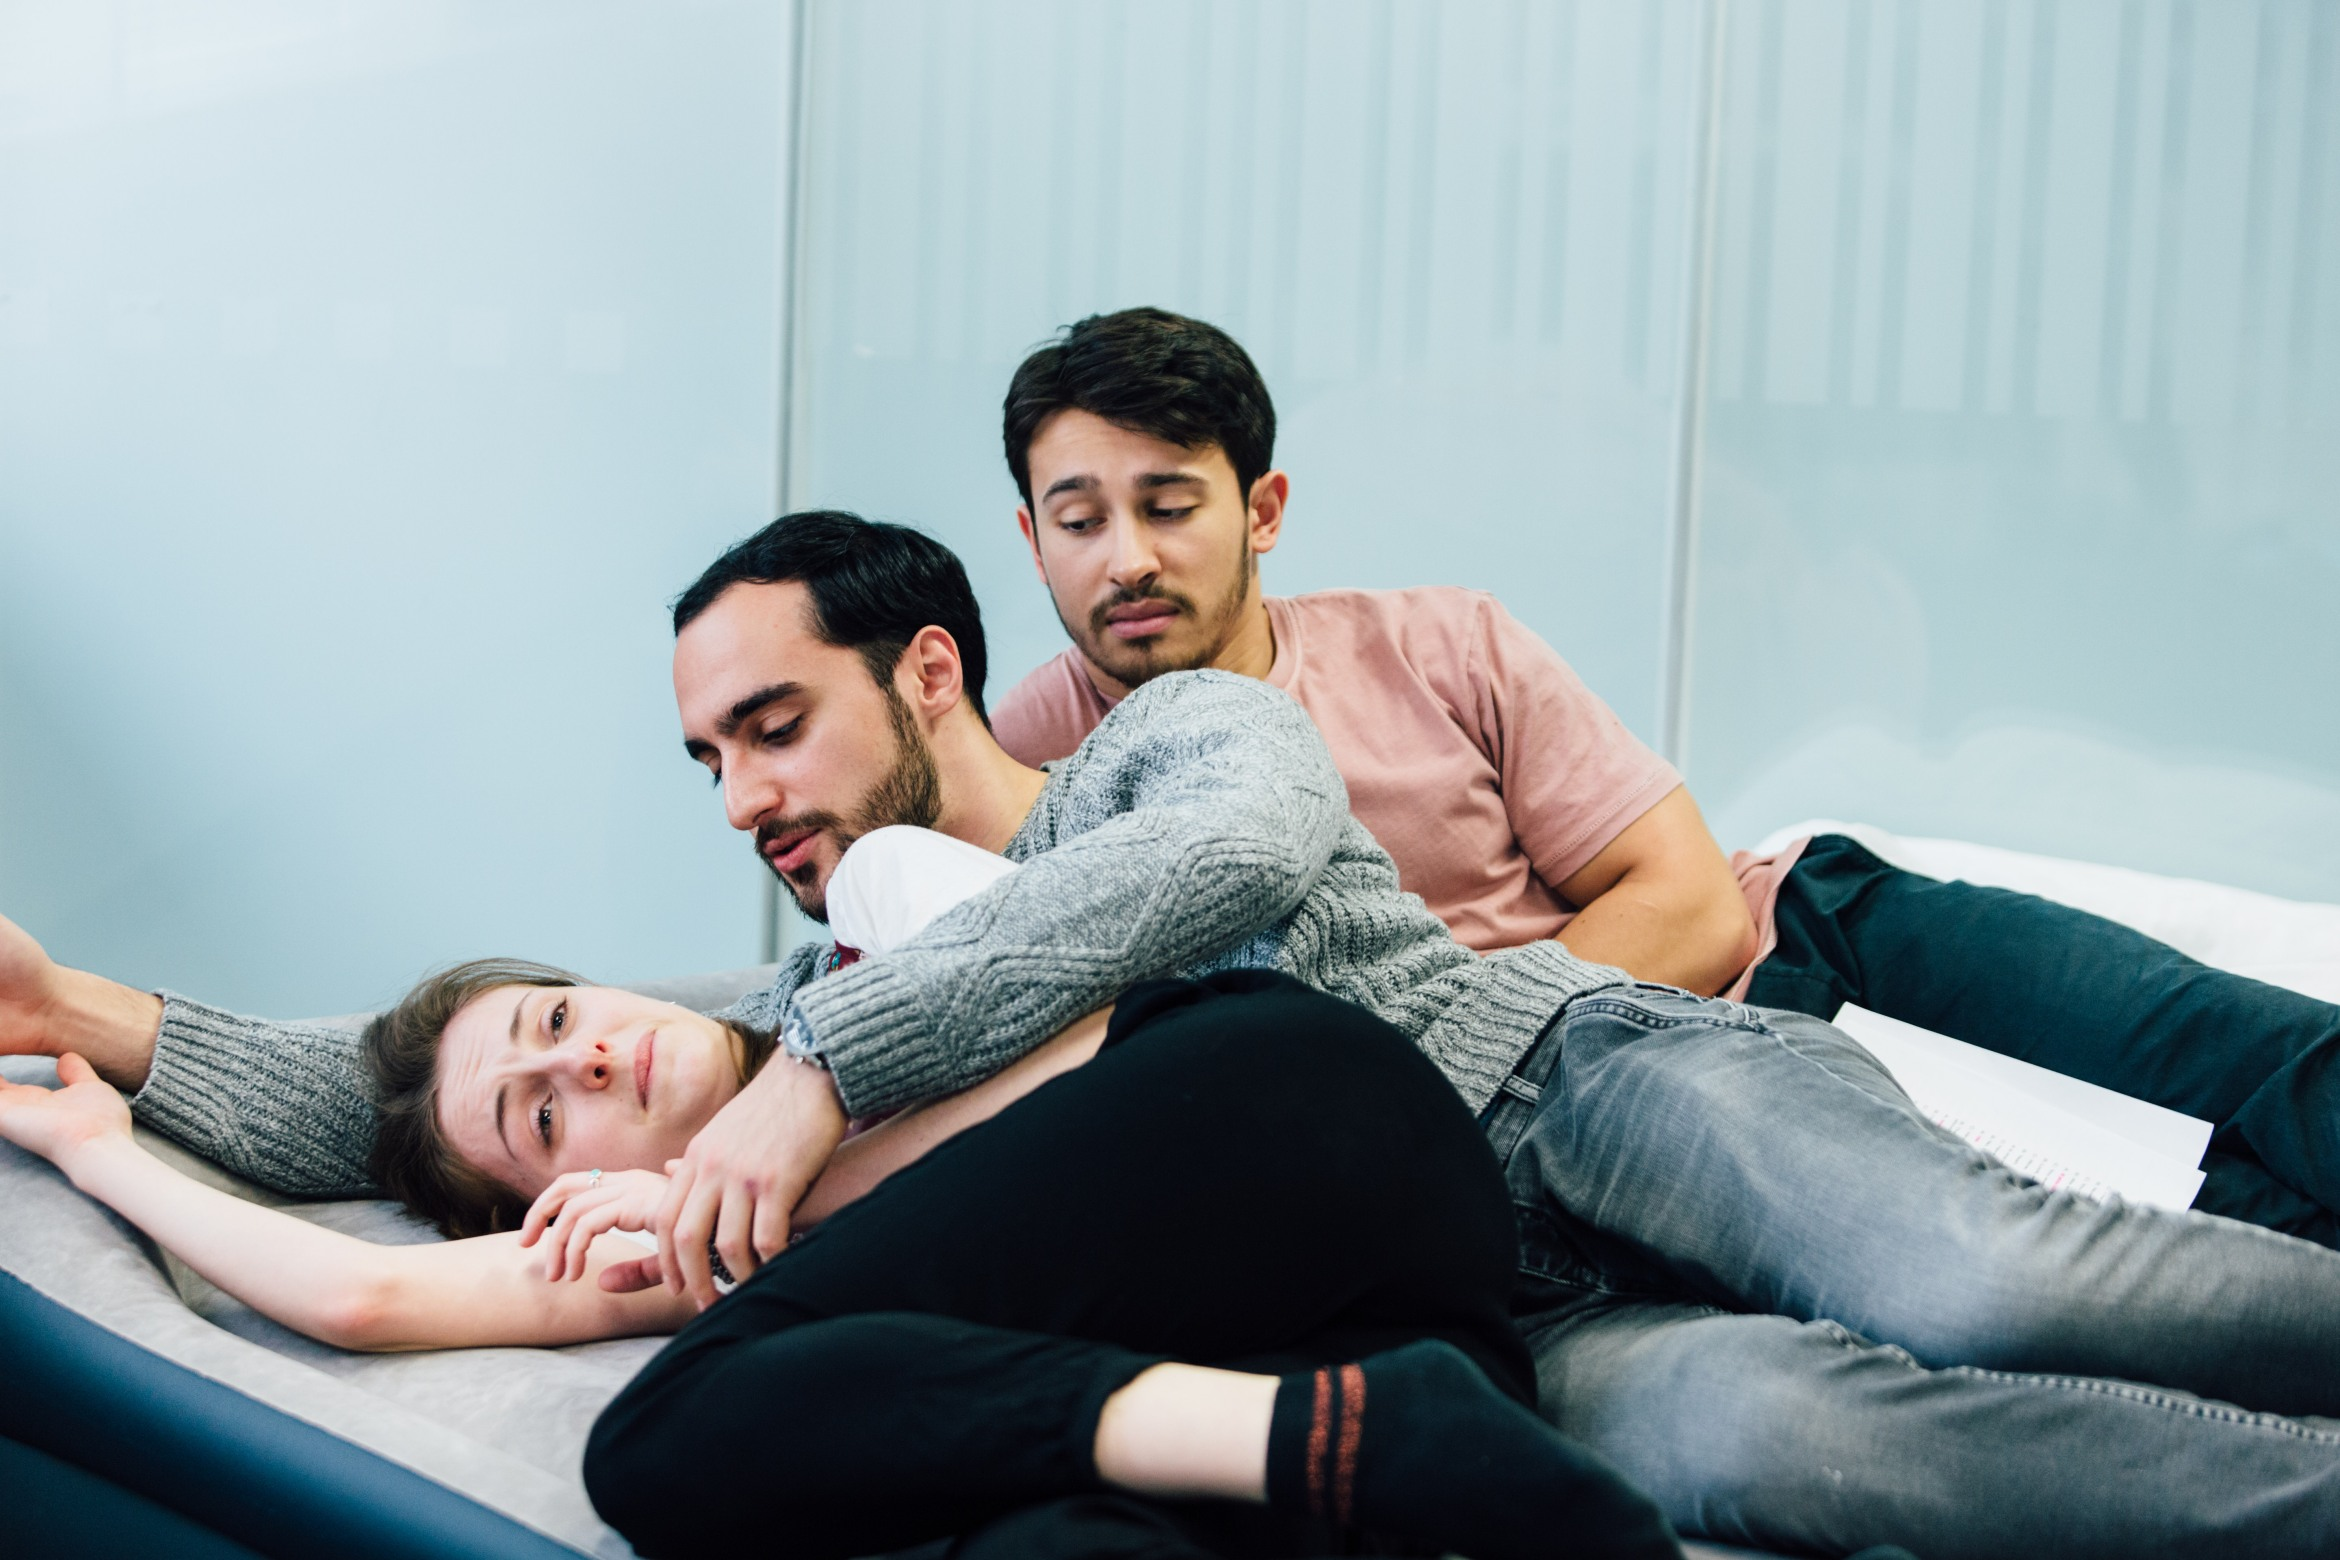 Helen Wilson, Gianbruno Spena and Alistair Toovey in Love Me Now rehearsals, credit of Helen Murray.jpg